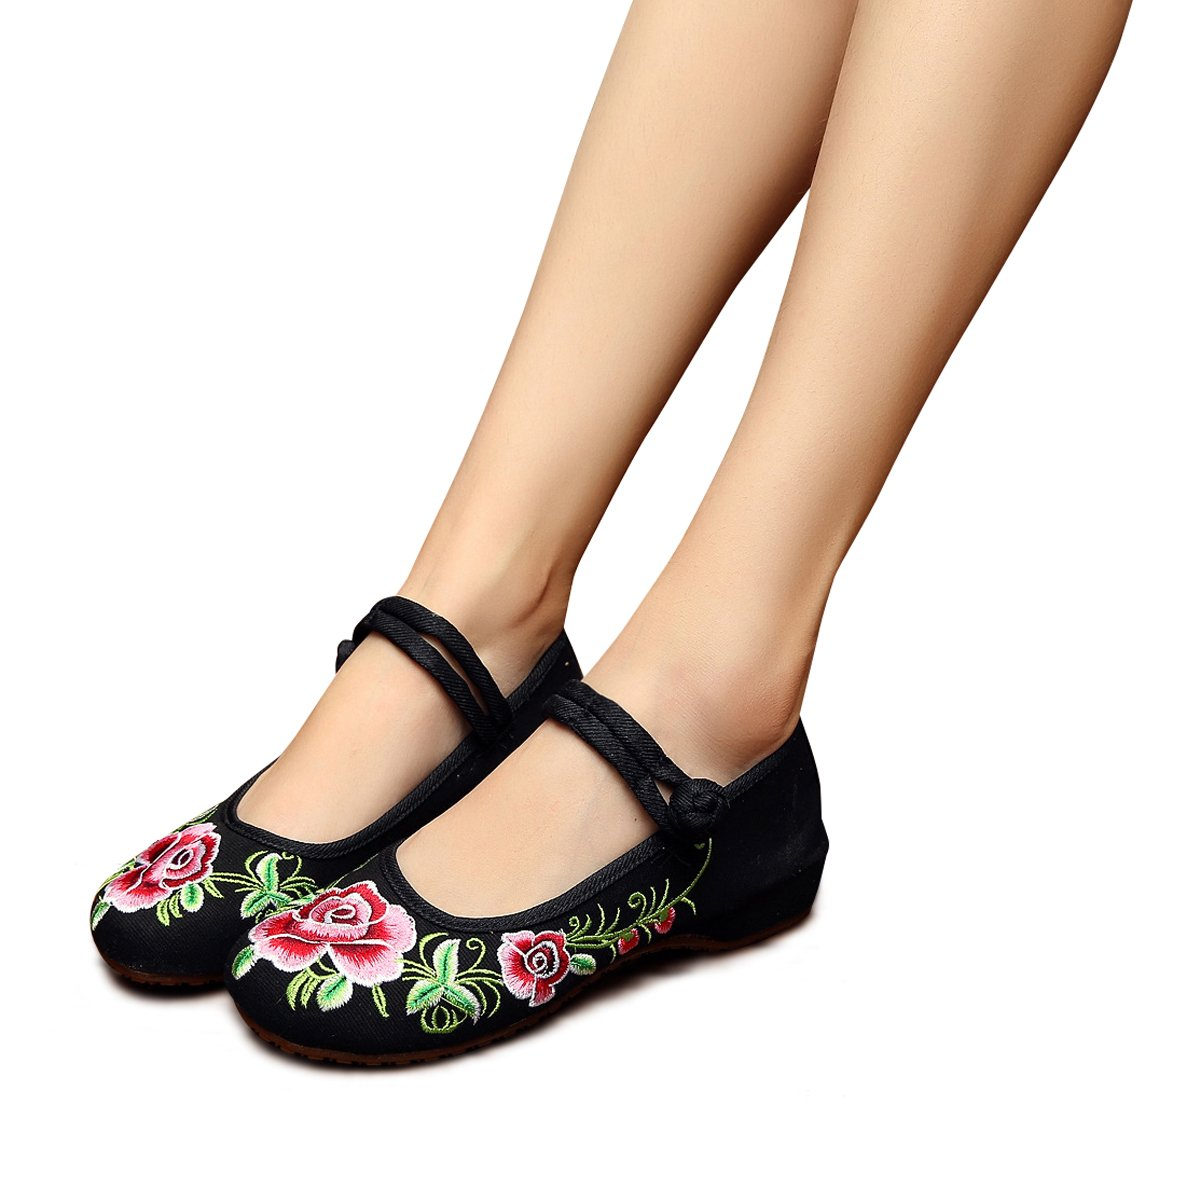 4b28542b5d77f Amazon.com | Veowalk Floral Embroidery Women's Canvas Shoes Mary ...